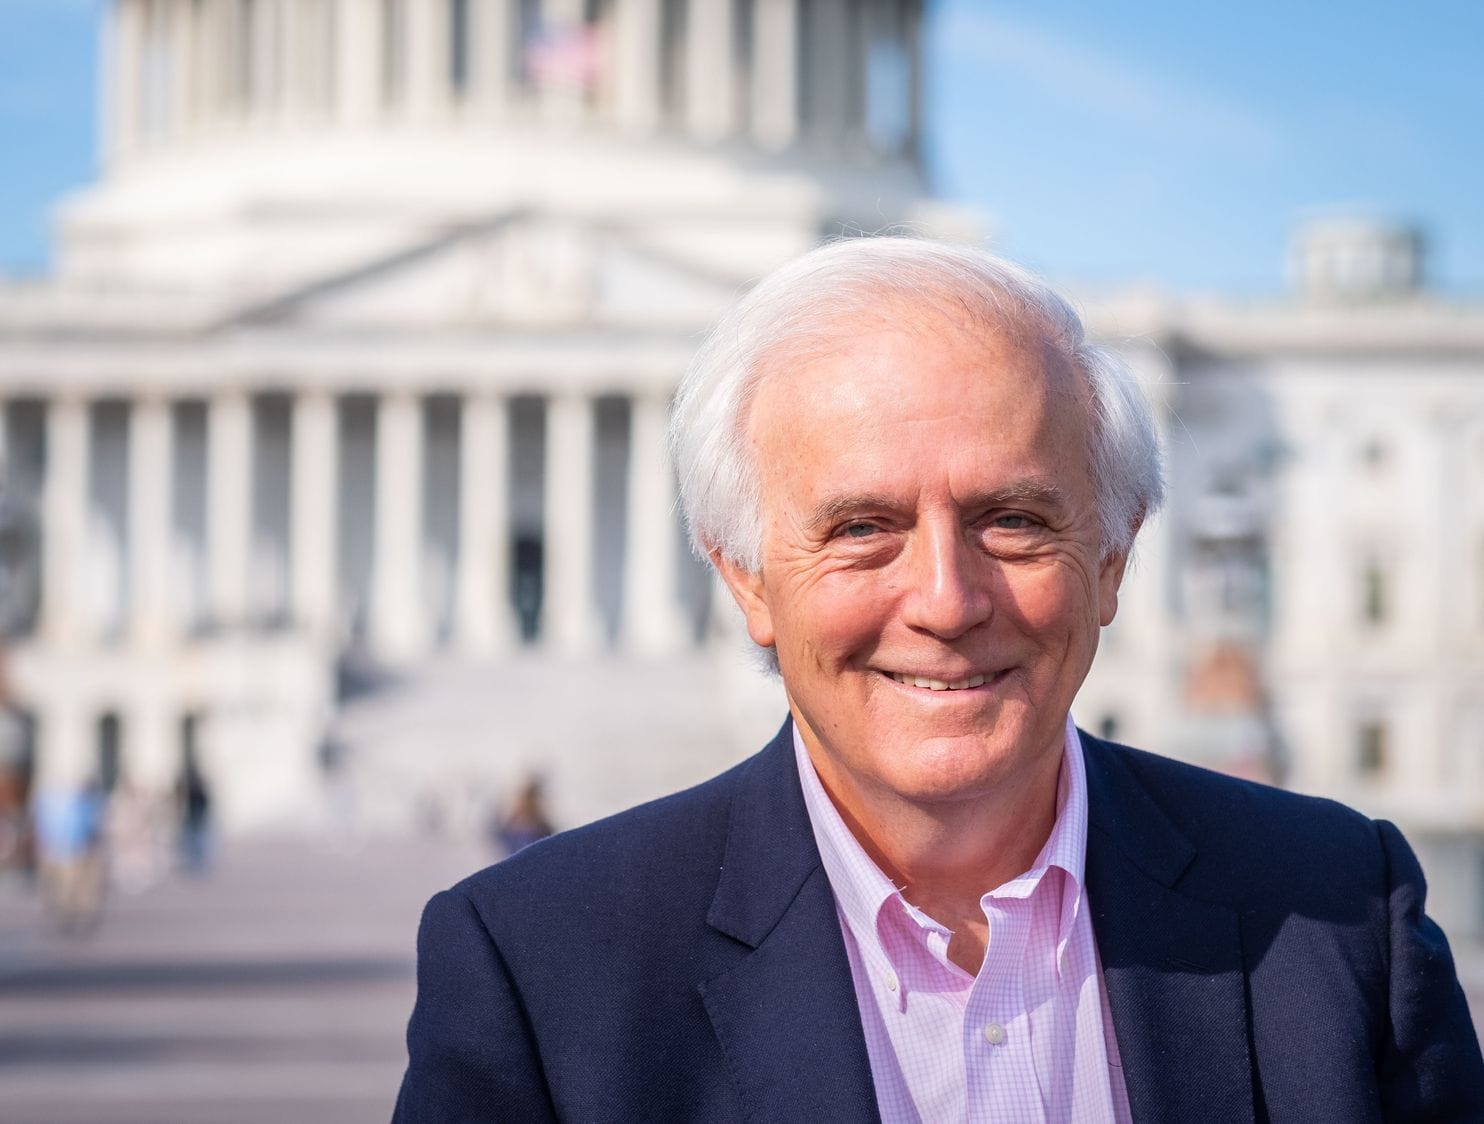 Hear from Bob - Click below for details on his latest public speaking engagements, or contact us to invite Bob Levey to speak to your group.